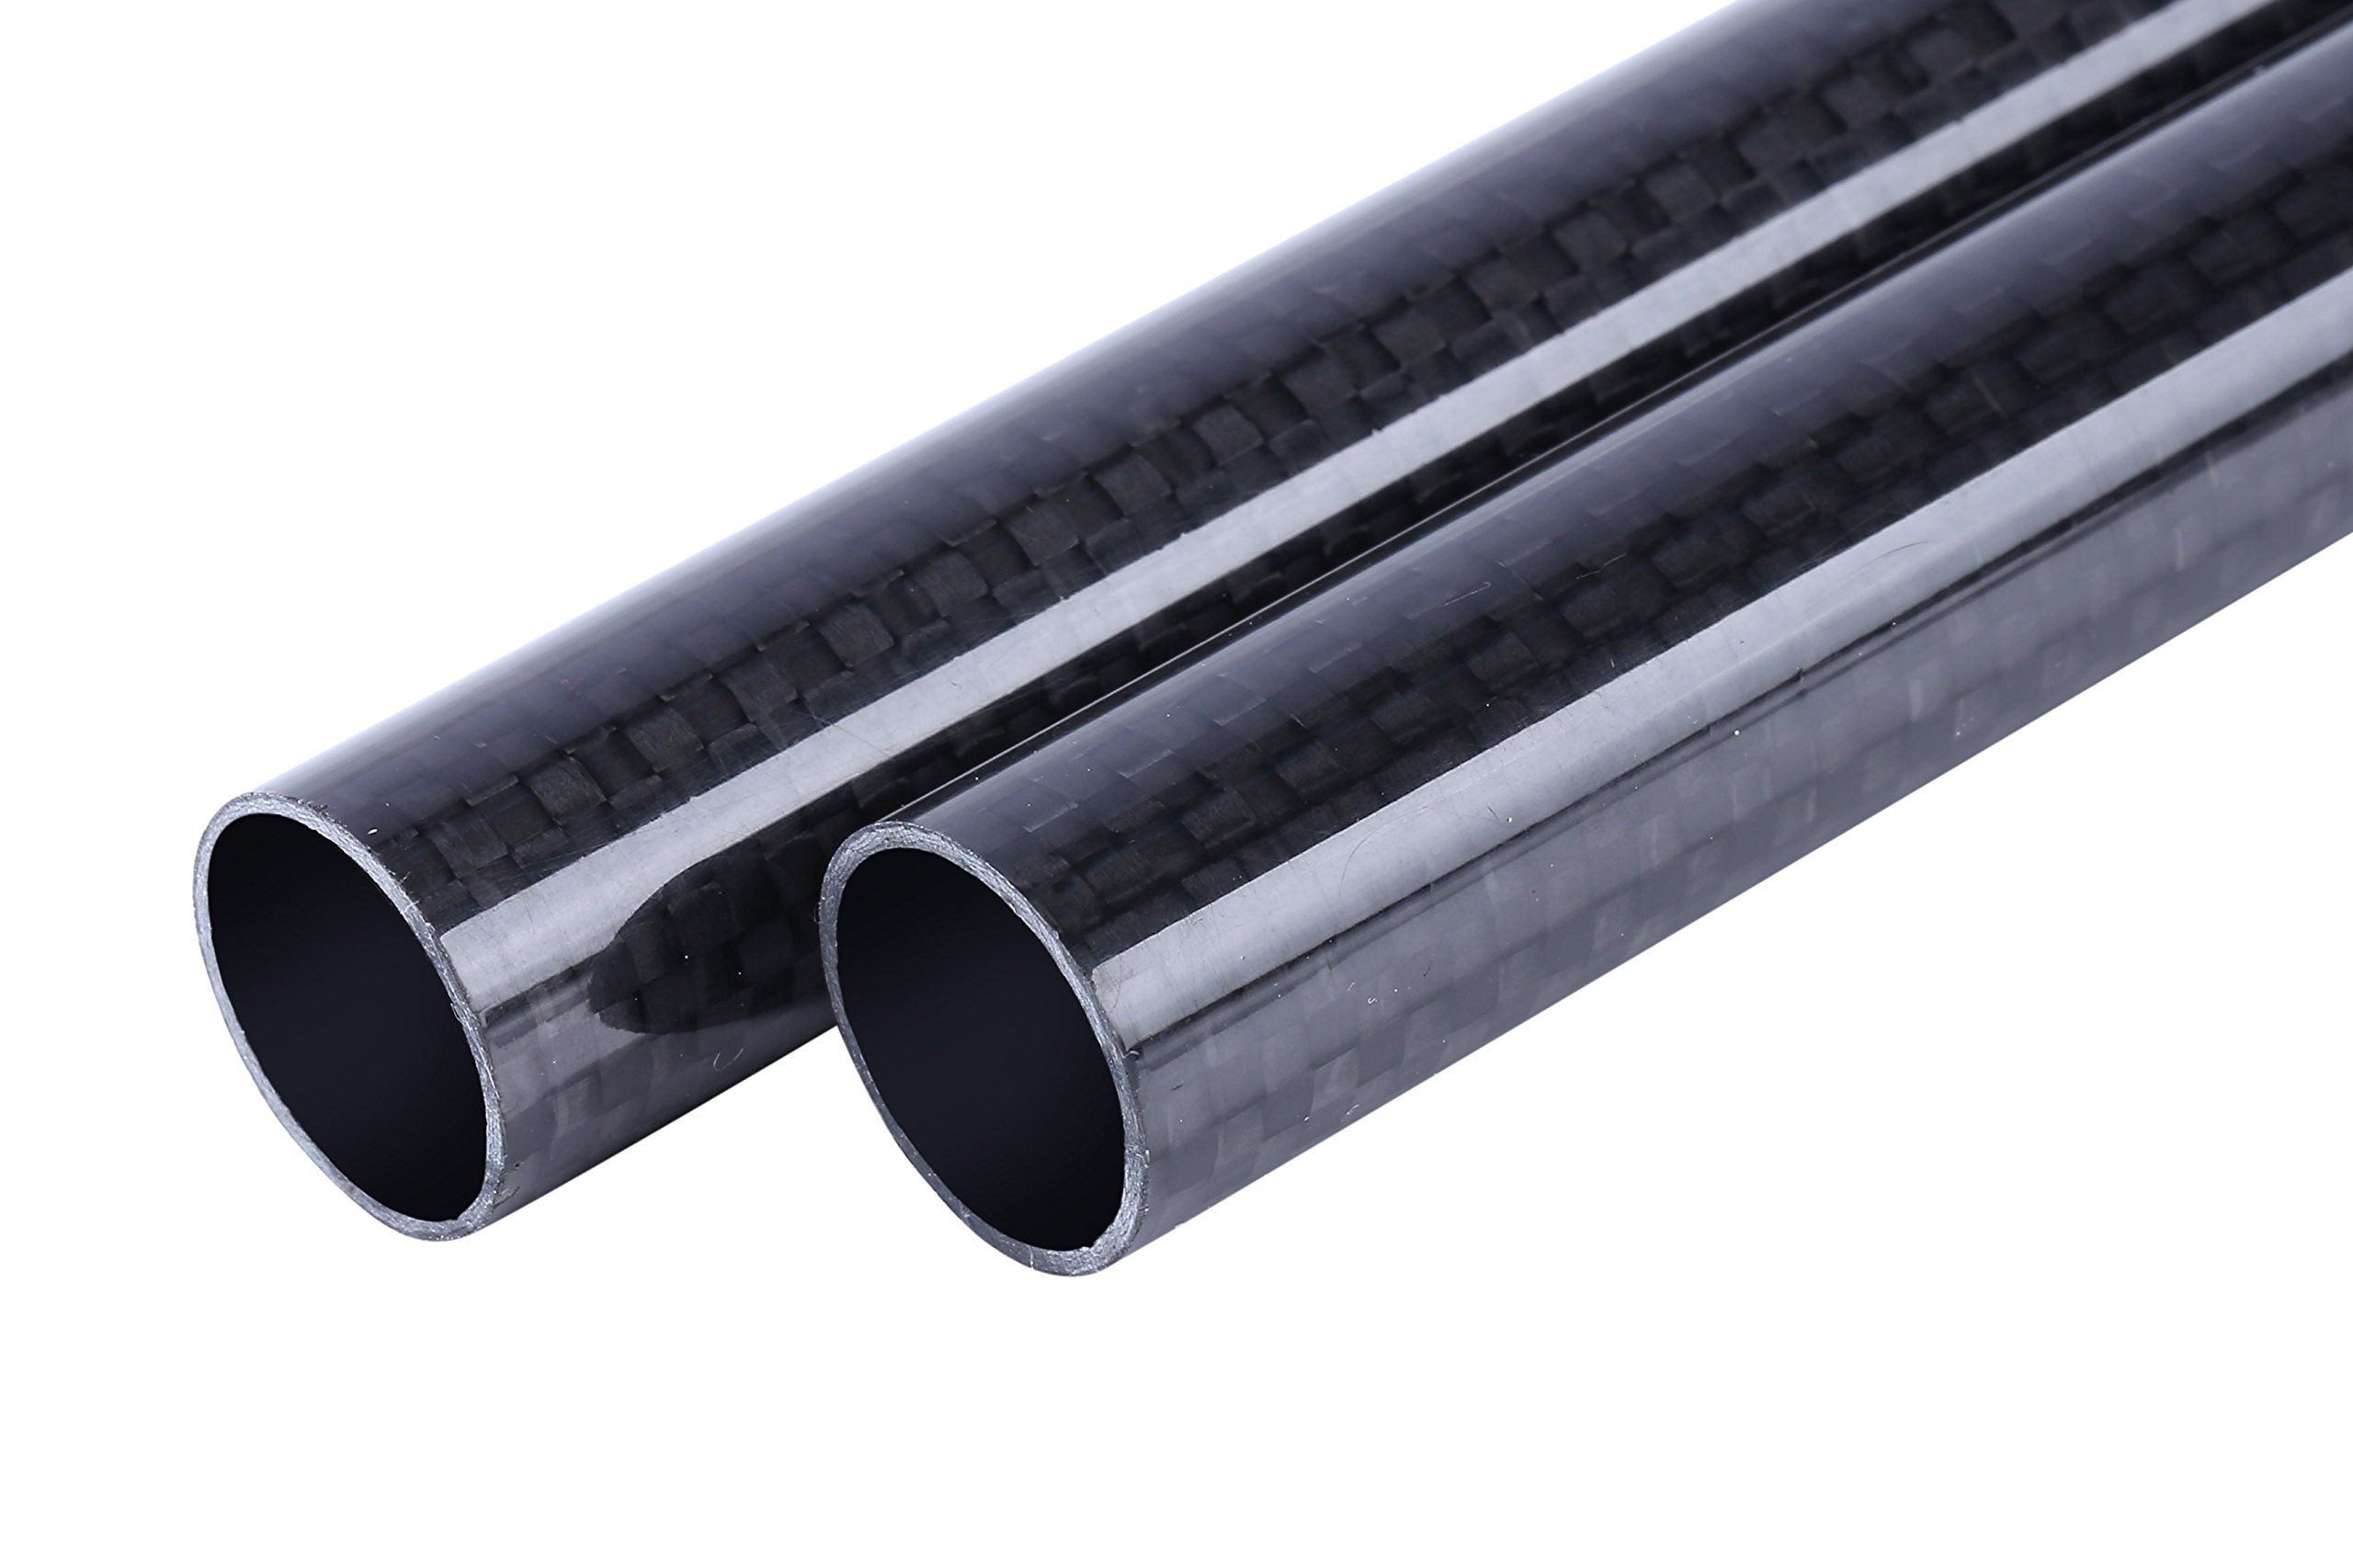 ALSTON 3K Roll Wrapped Carbon Fiber Tube 14x16x500mm Light Surfaces Pack of Two Pcs by Alston